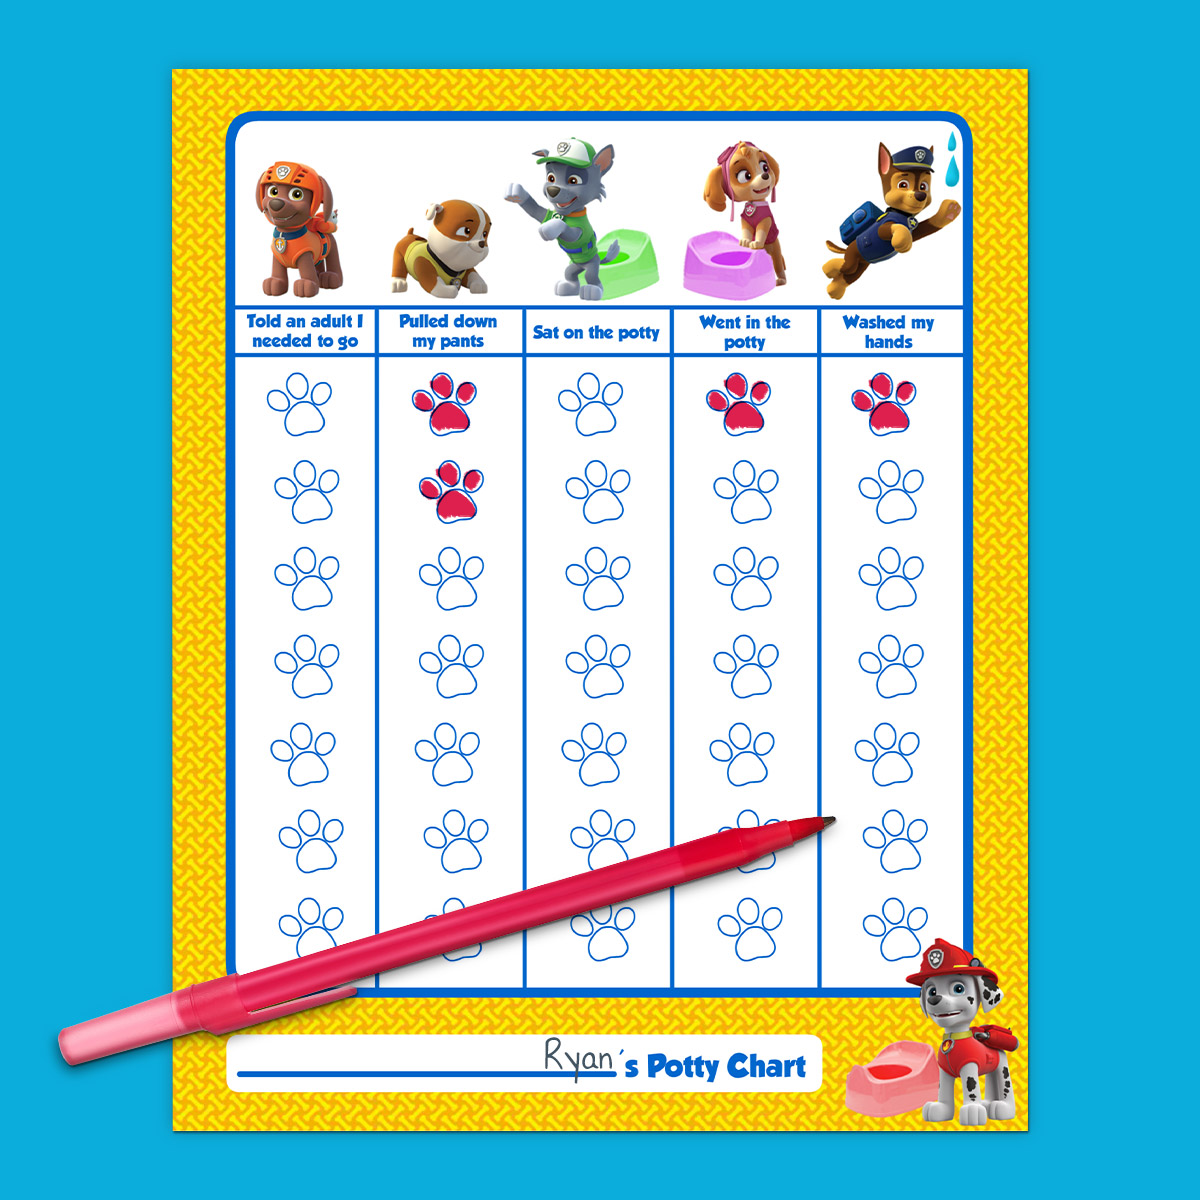 paw patrol potty training chart nickelodeon parents savesave to paw patrol printable potty training chart